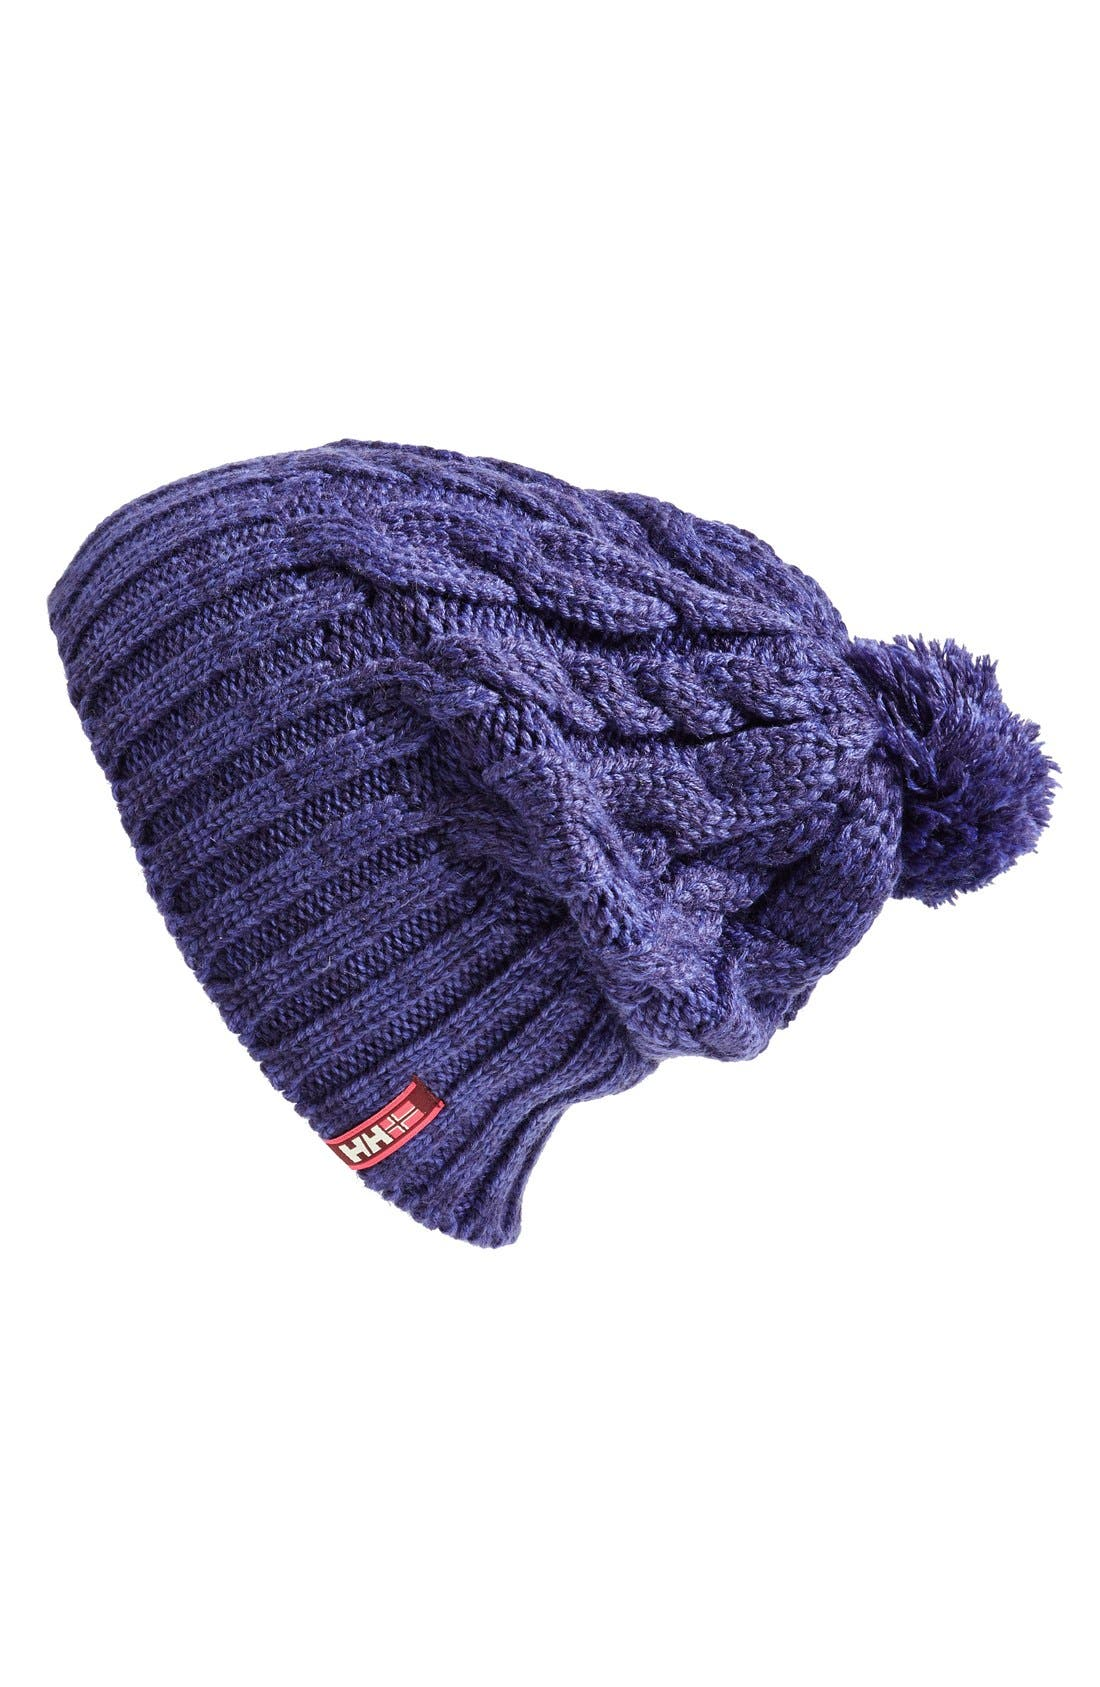 Alternate Image 1 Selected - Helly Hansen 'Montreal' Chunky Knit Beanie